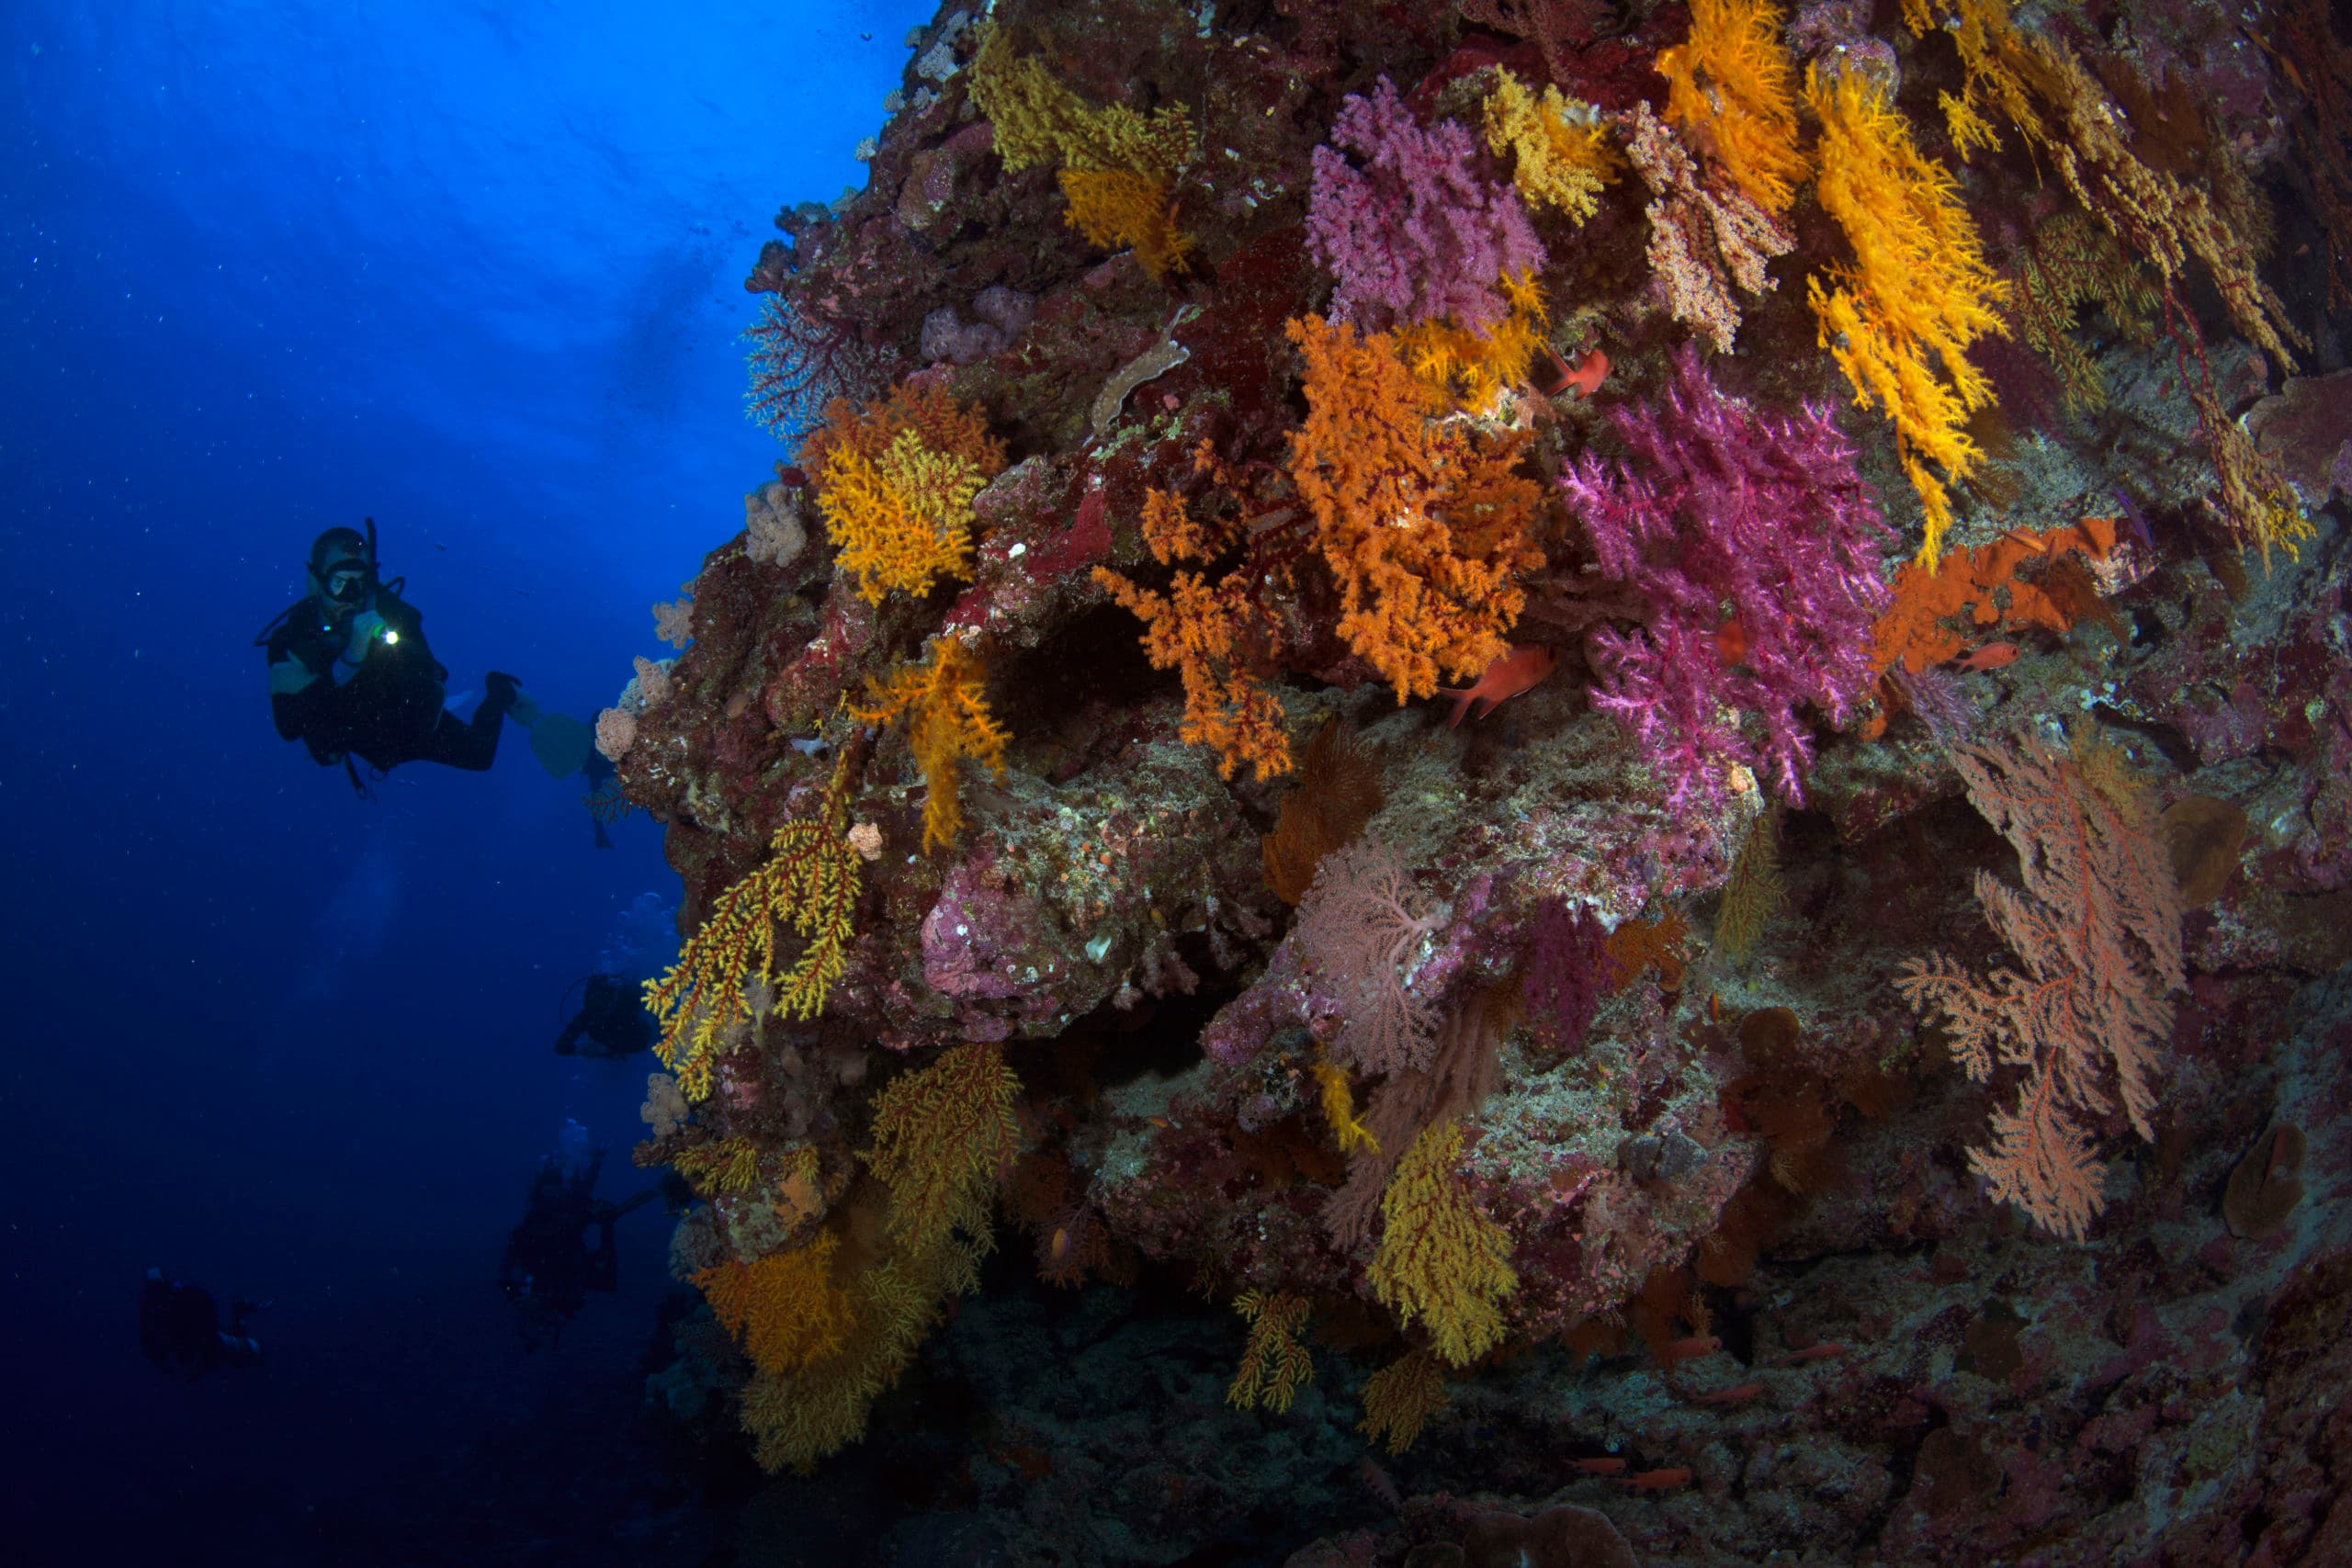 Bougainville reef